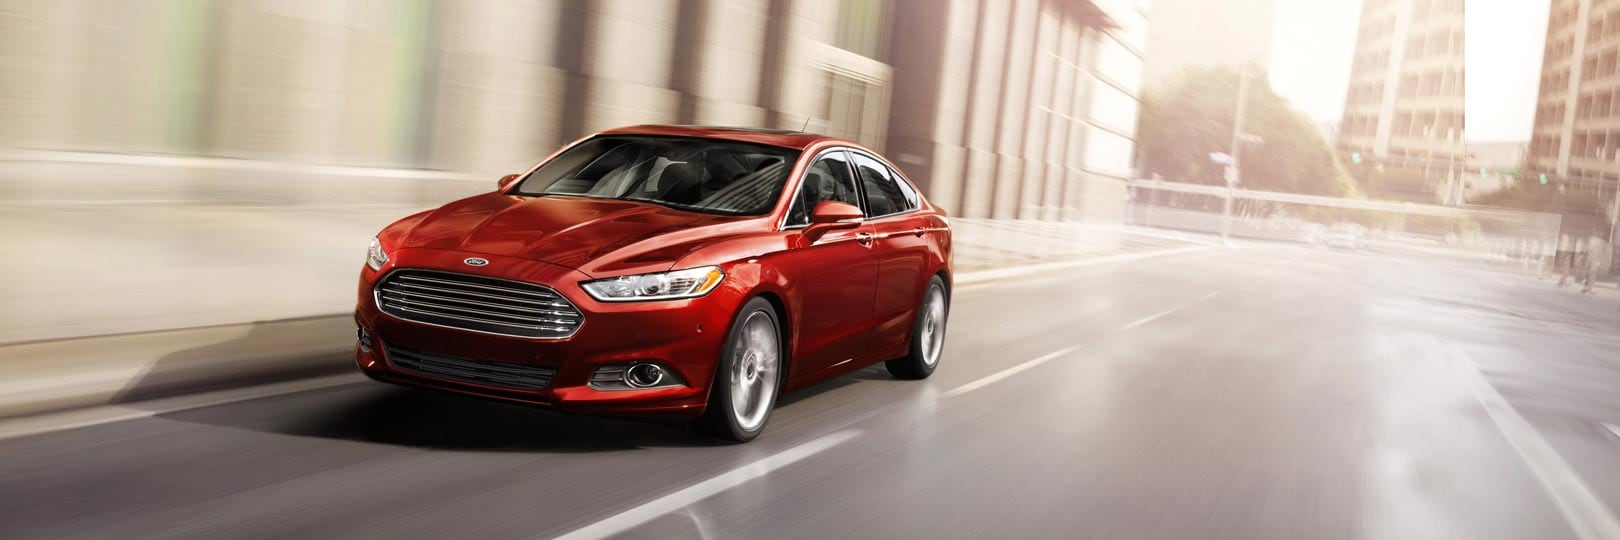 New Ford And Used Car Dealer Serving Kennebunk Arundel Ford - Ford dealers in maine